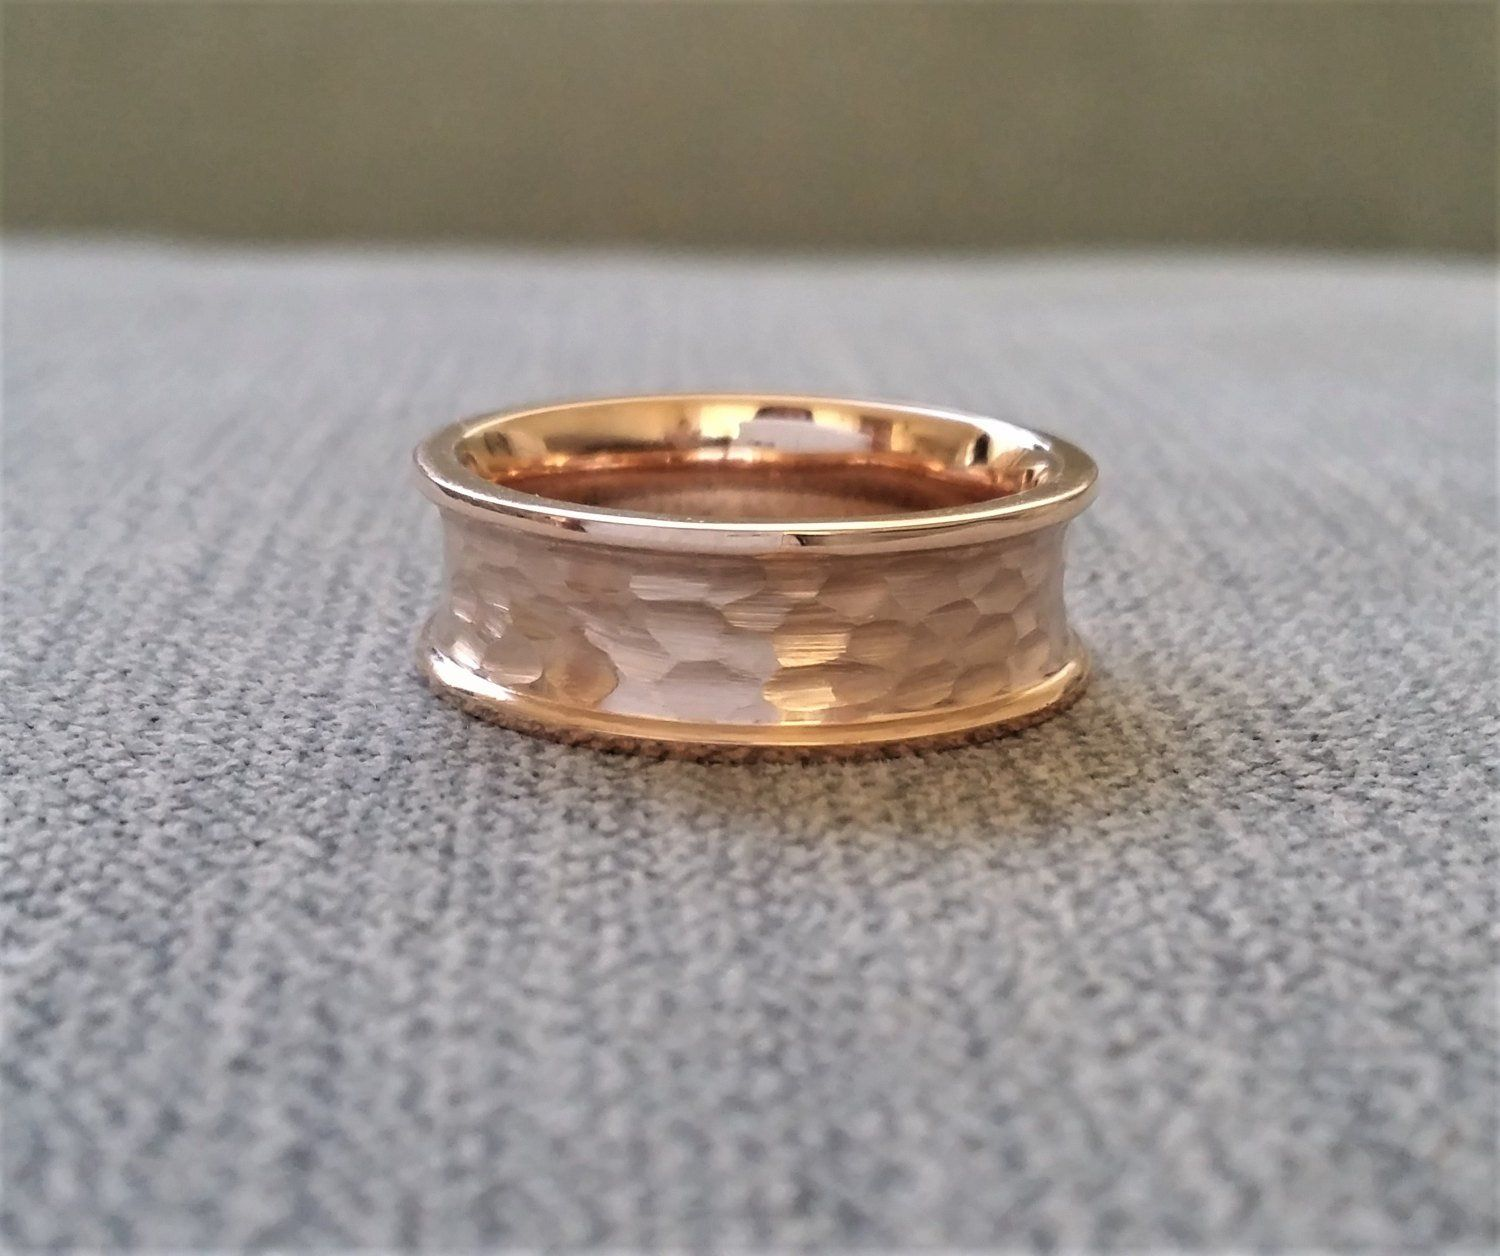 Rustic Mens Wedding Band Ring Textured Hammered Brushed